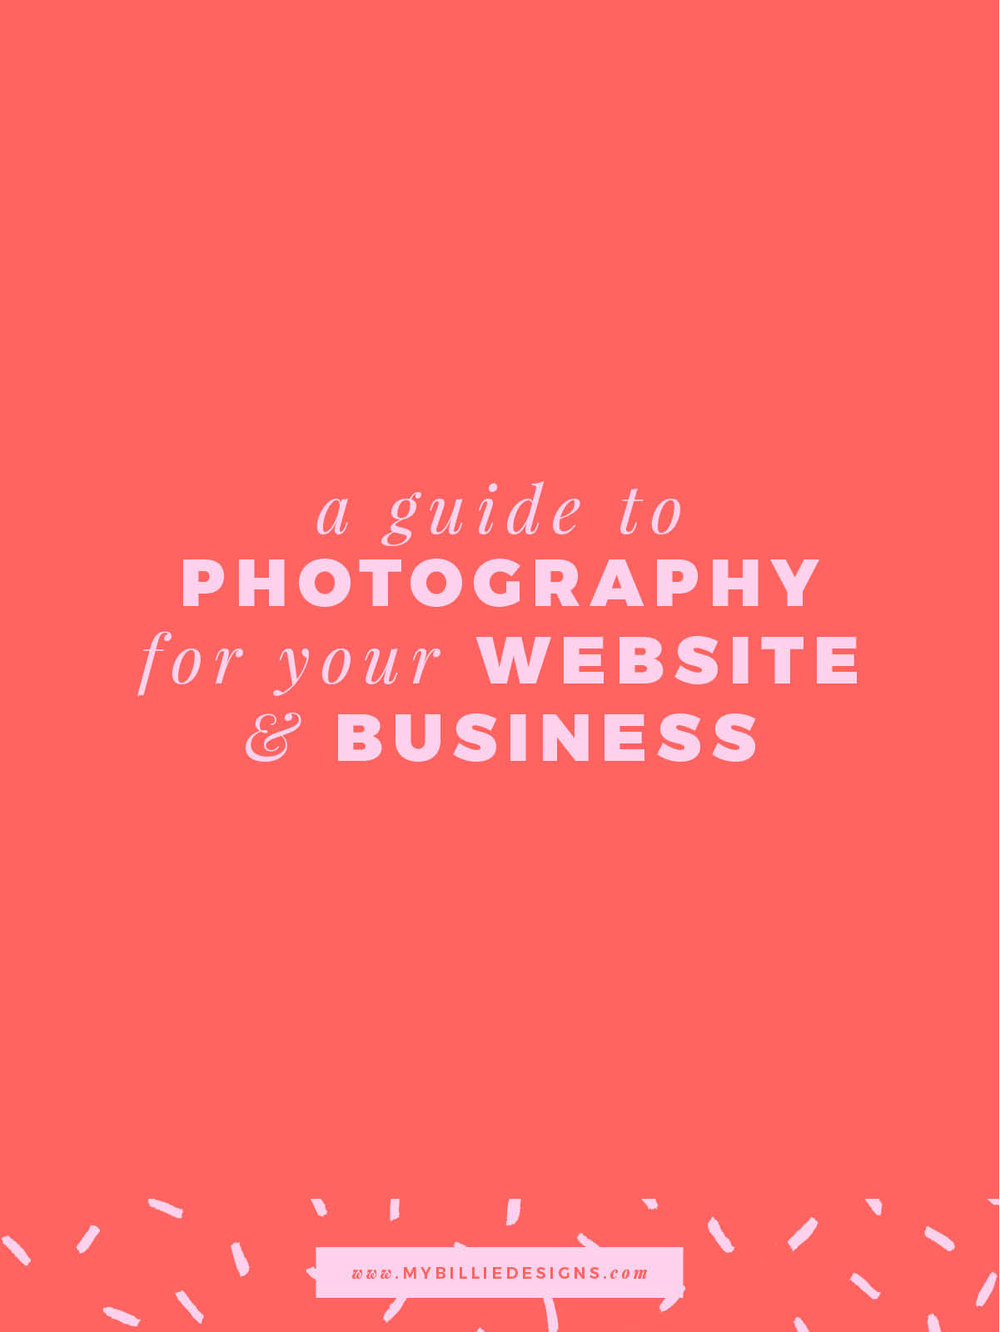 A Guide To Photography For Your Website And Business